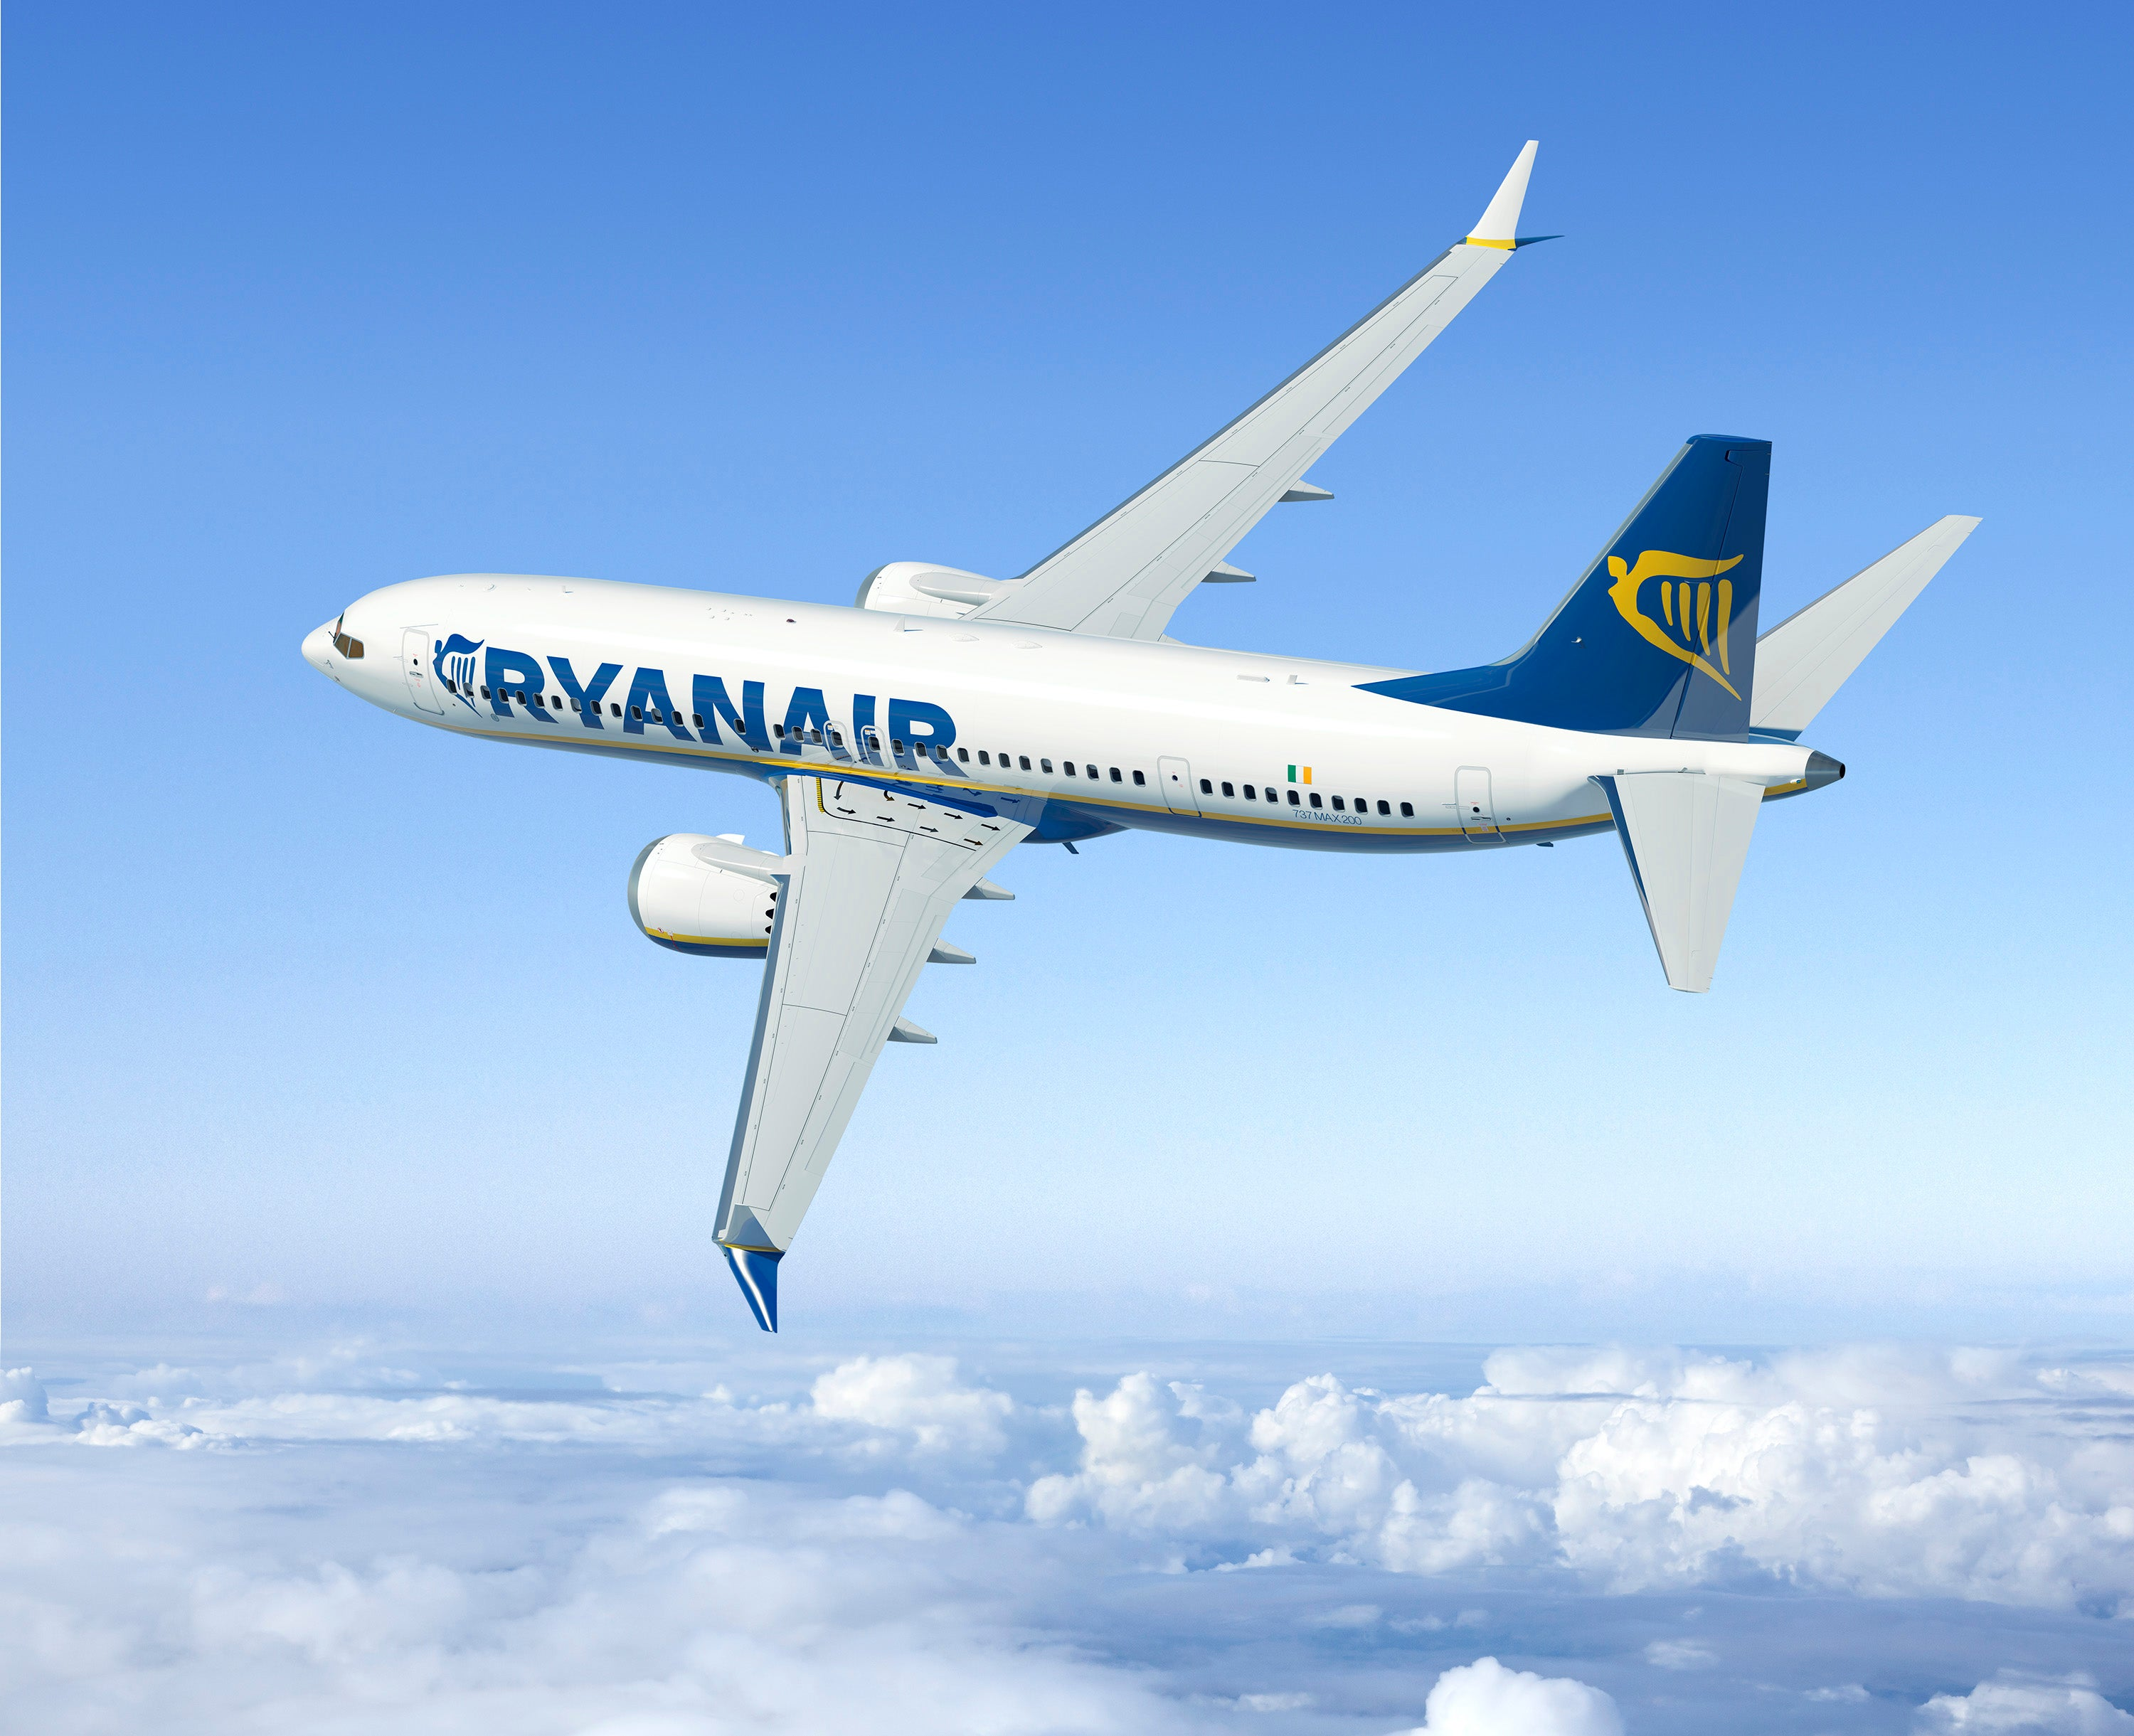 Ryanair aims to fly Boeing 737 Max from 'early next year'